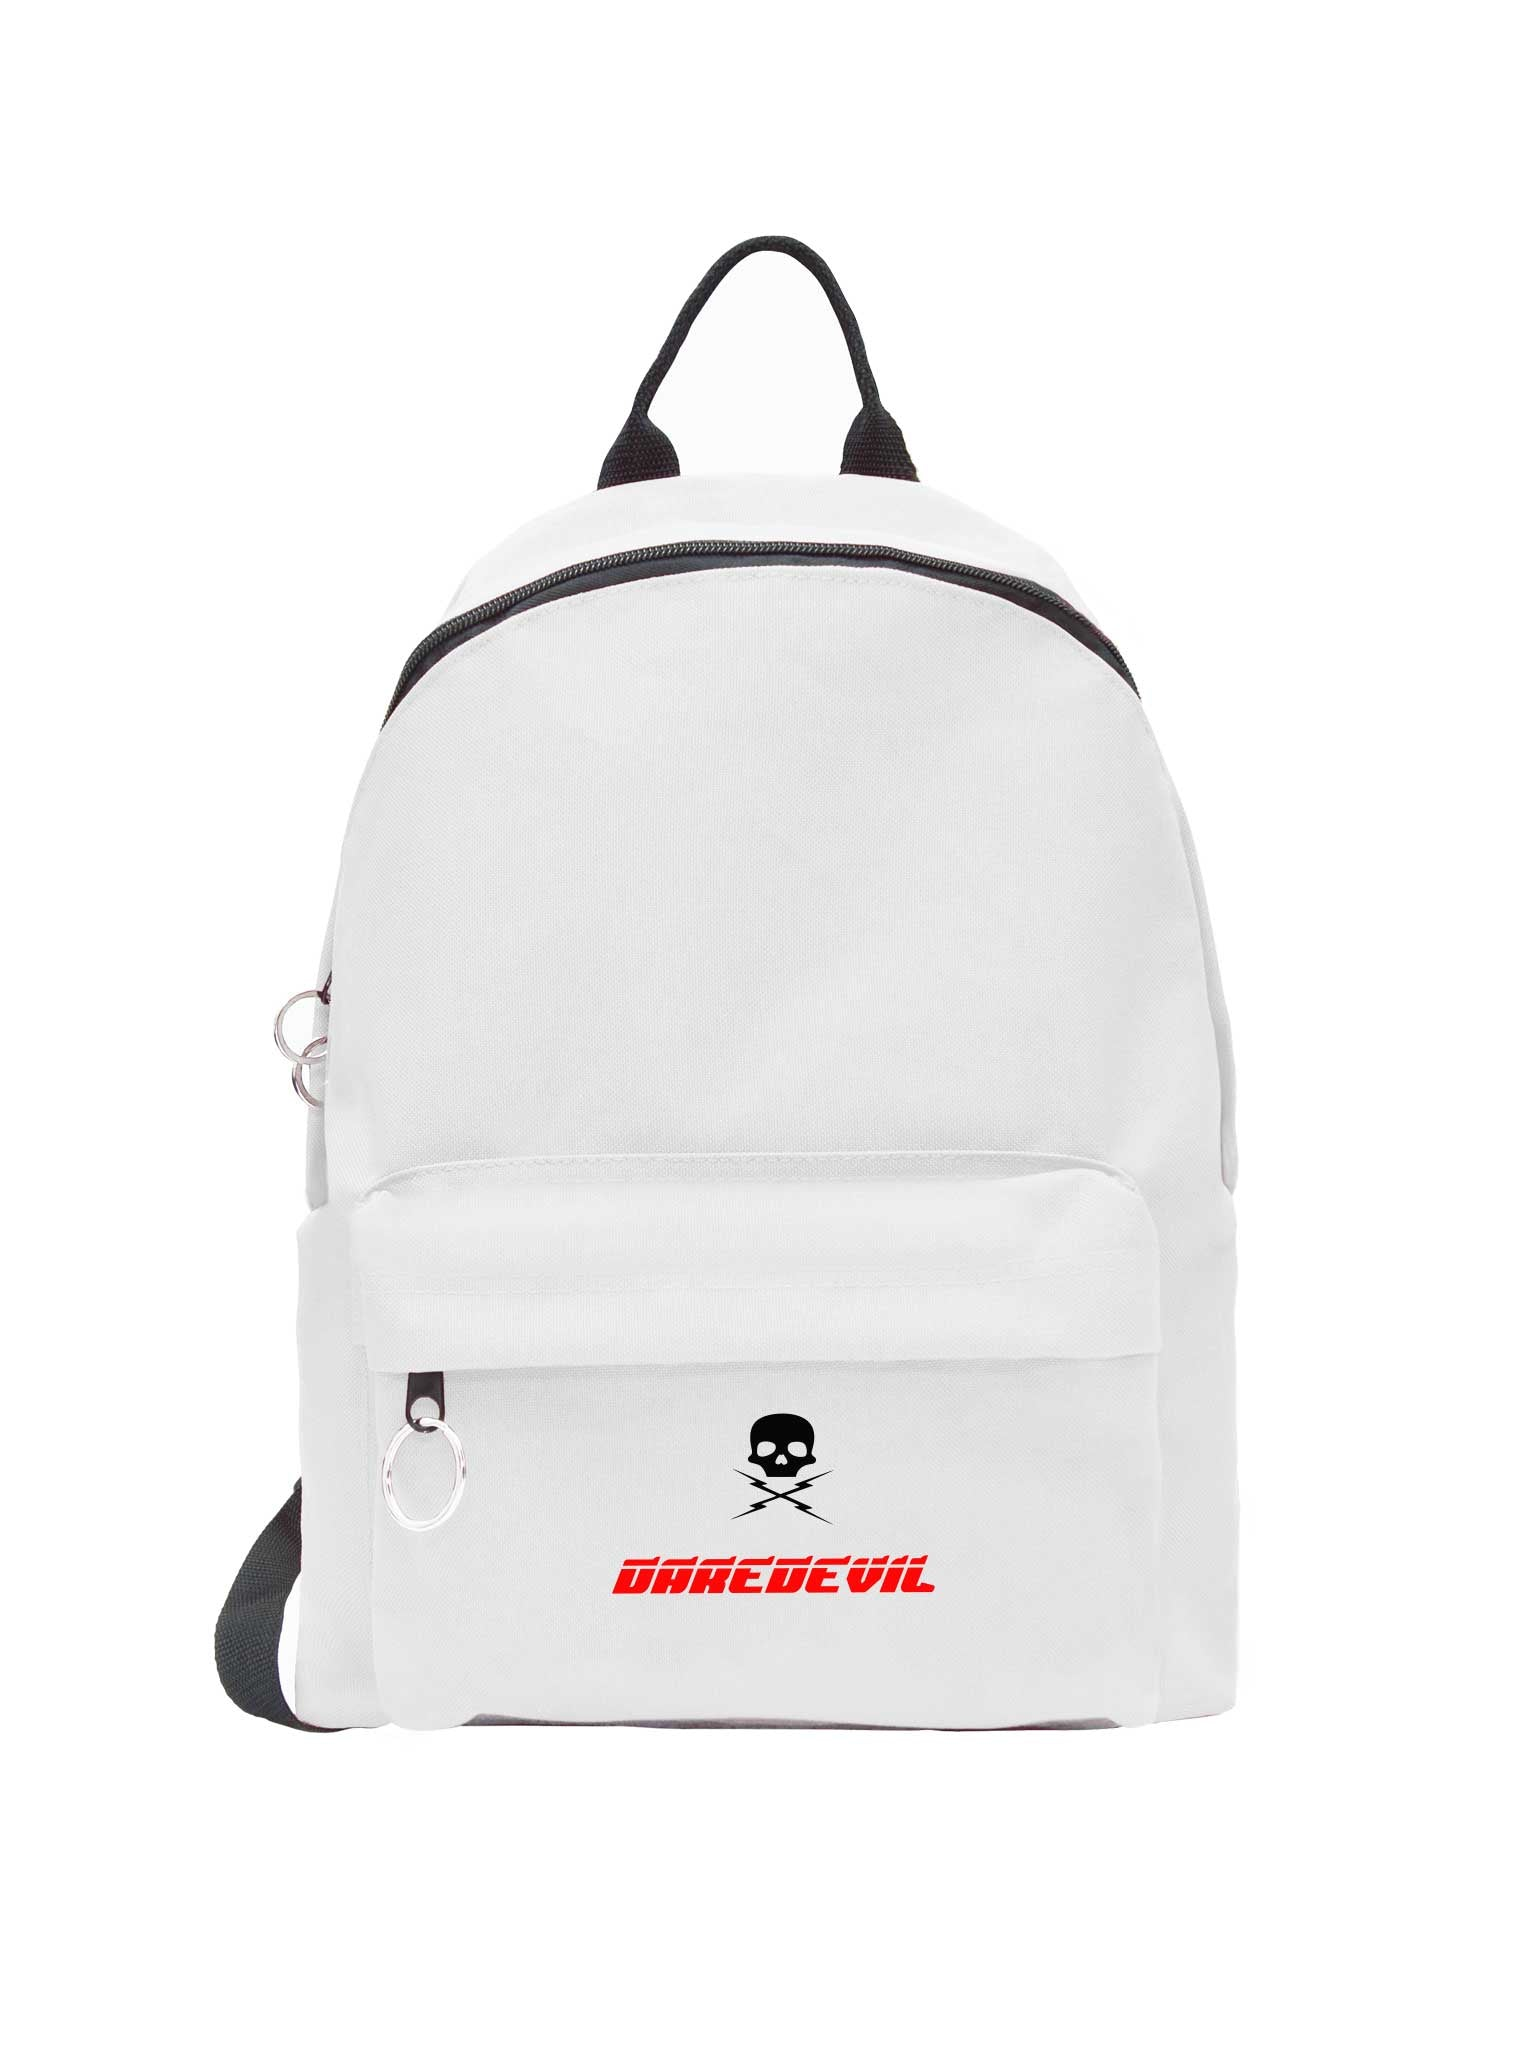 Daredevil Skull Backpack